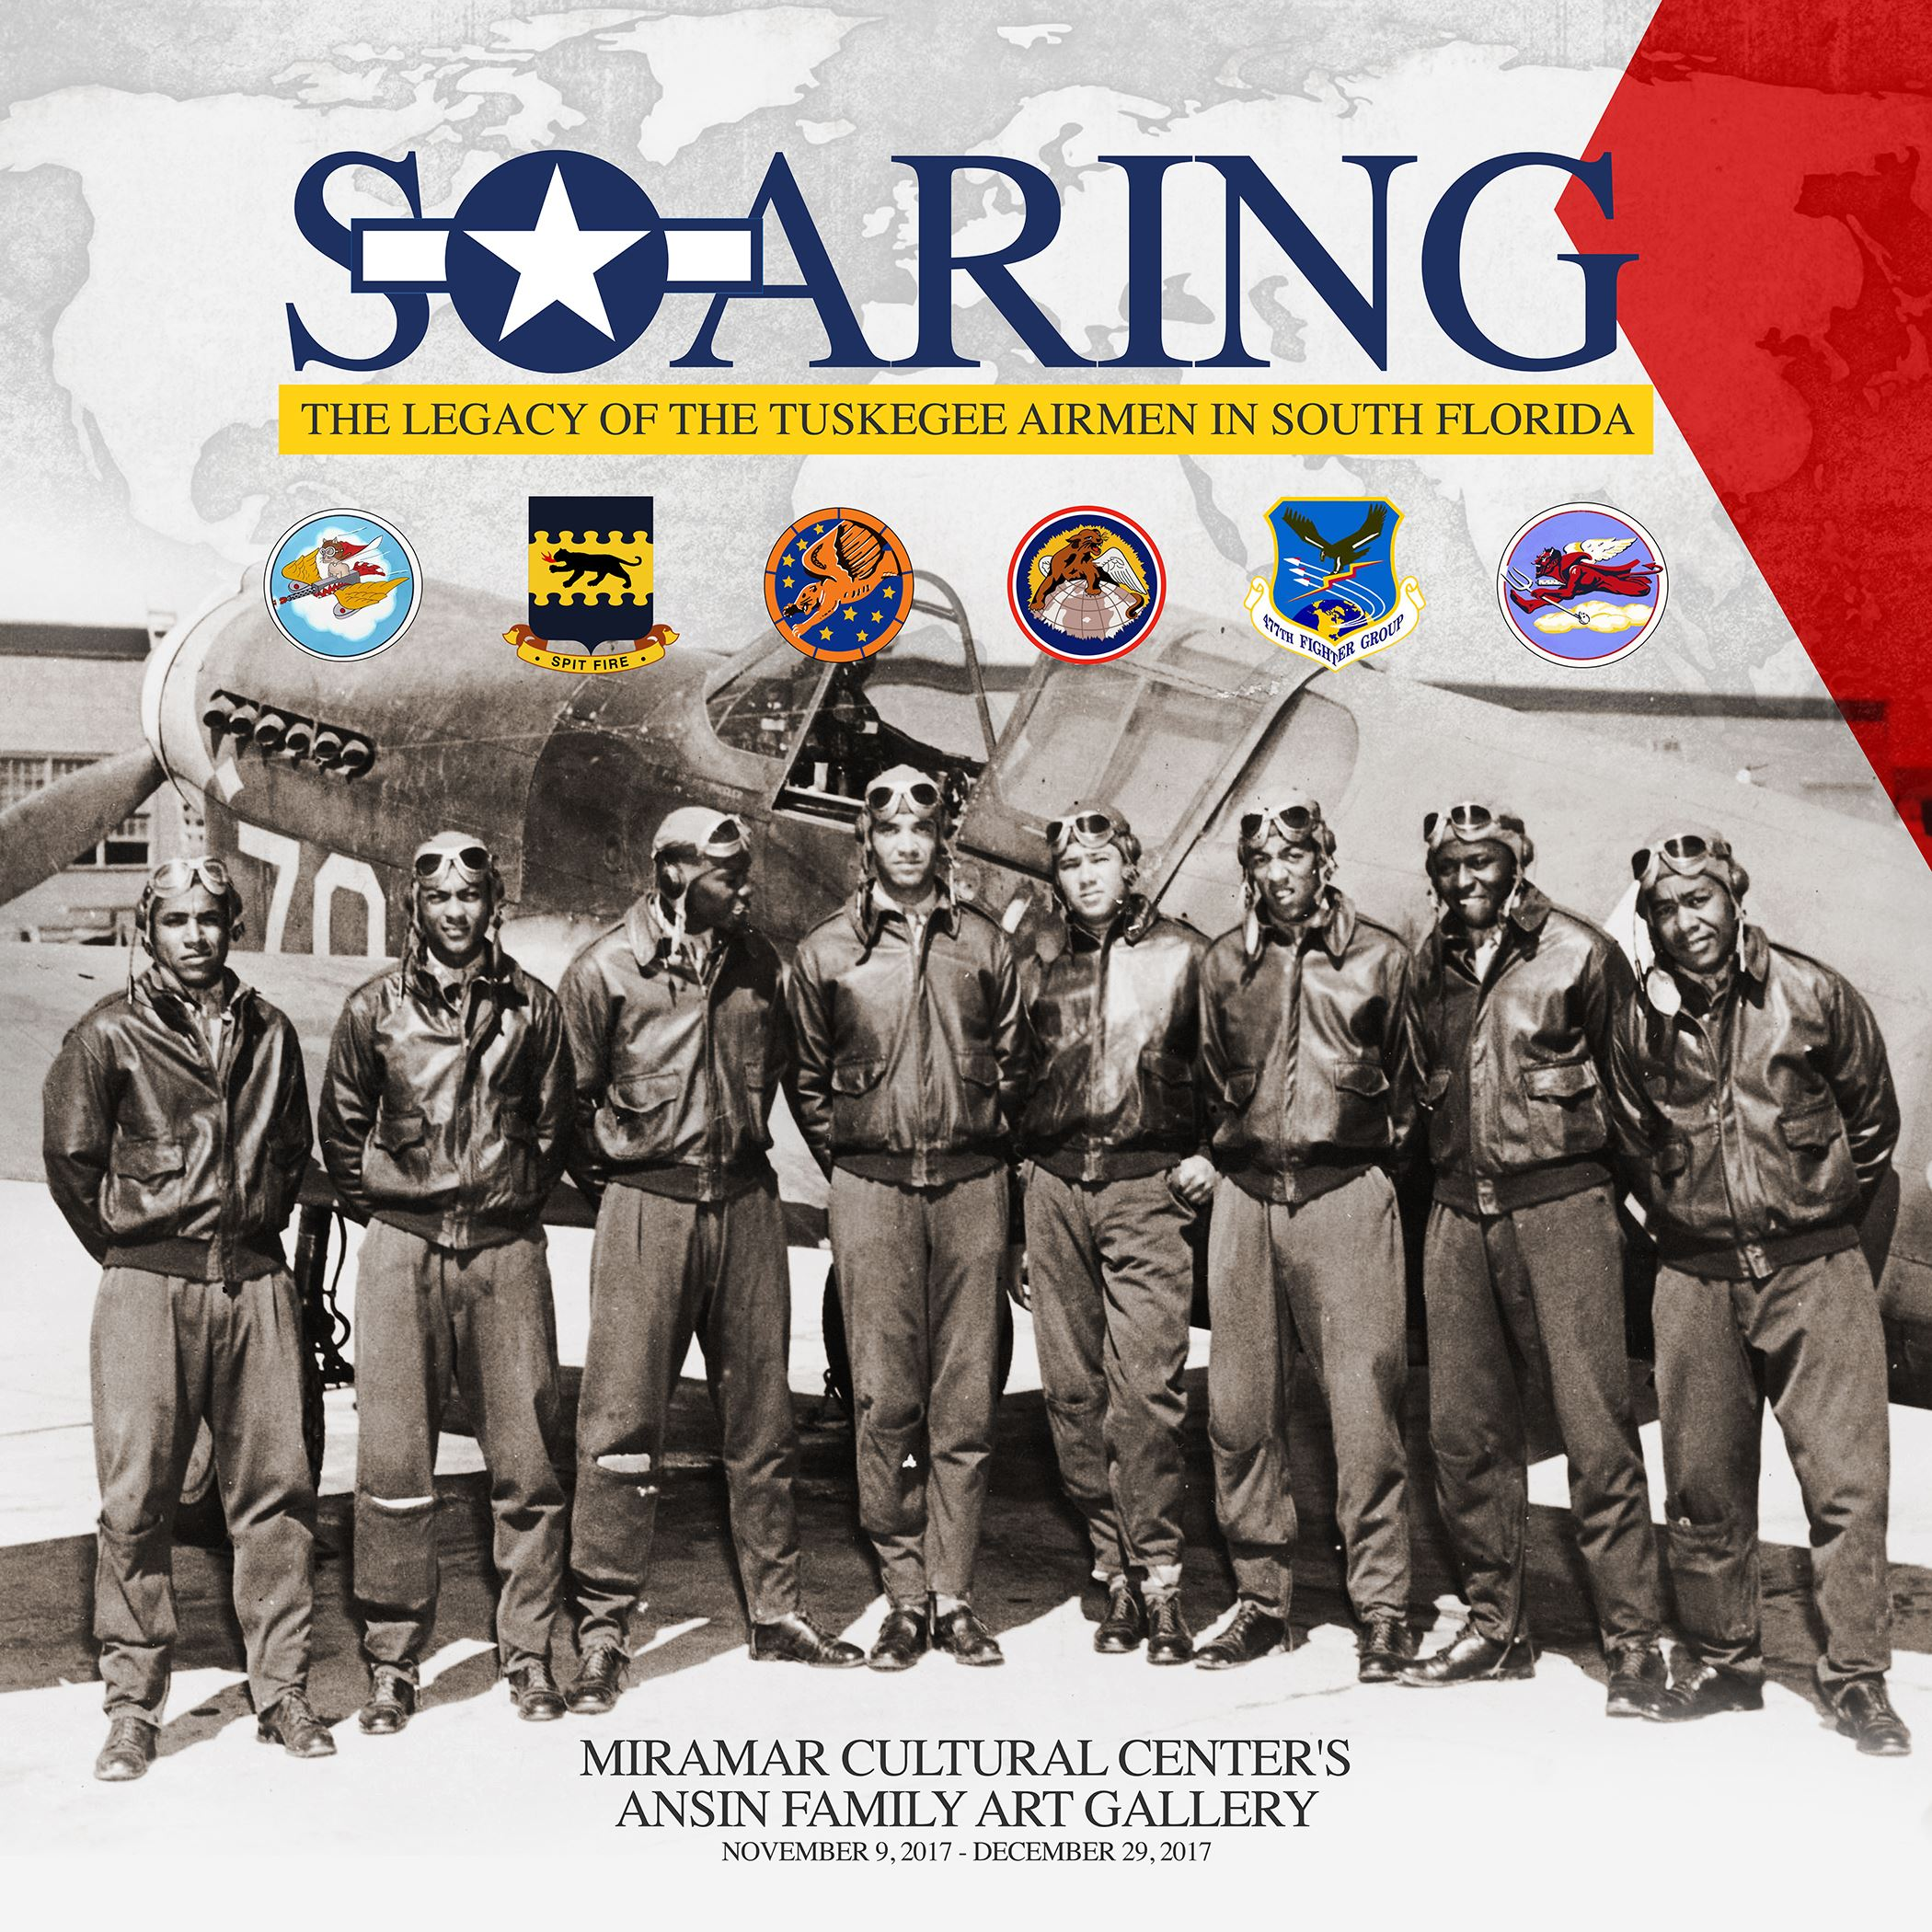 The Legacy of the Tuskegee Airmen in South Florida